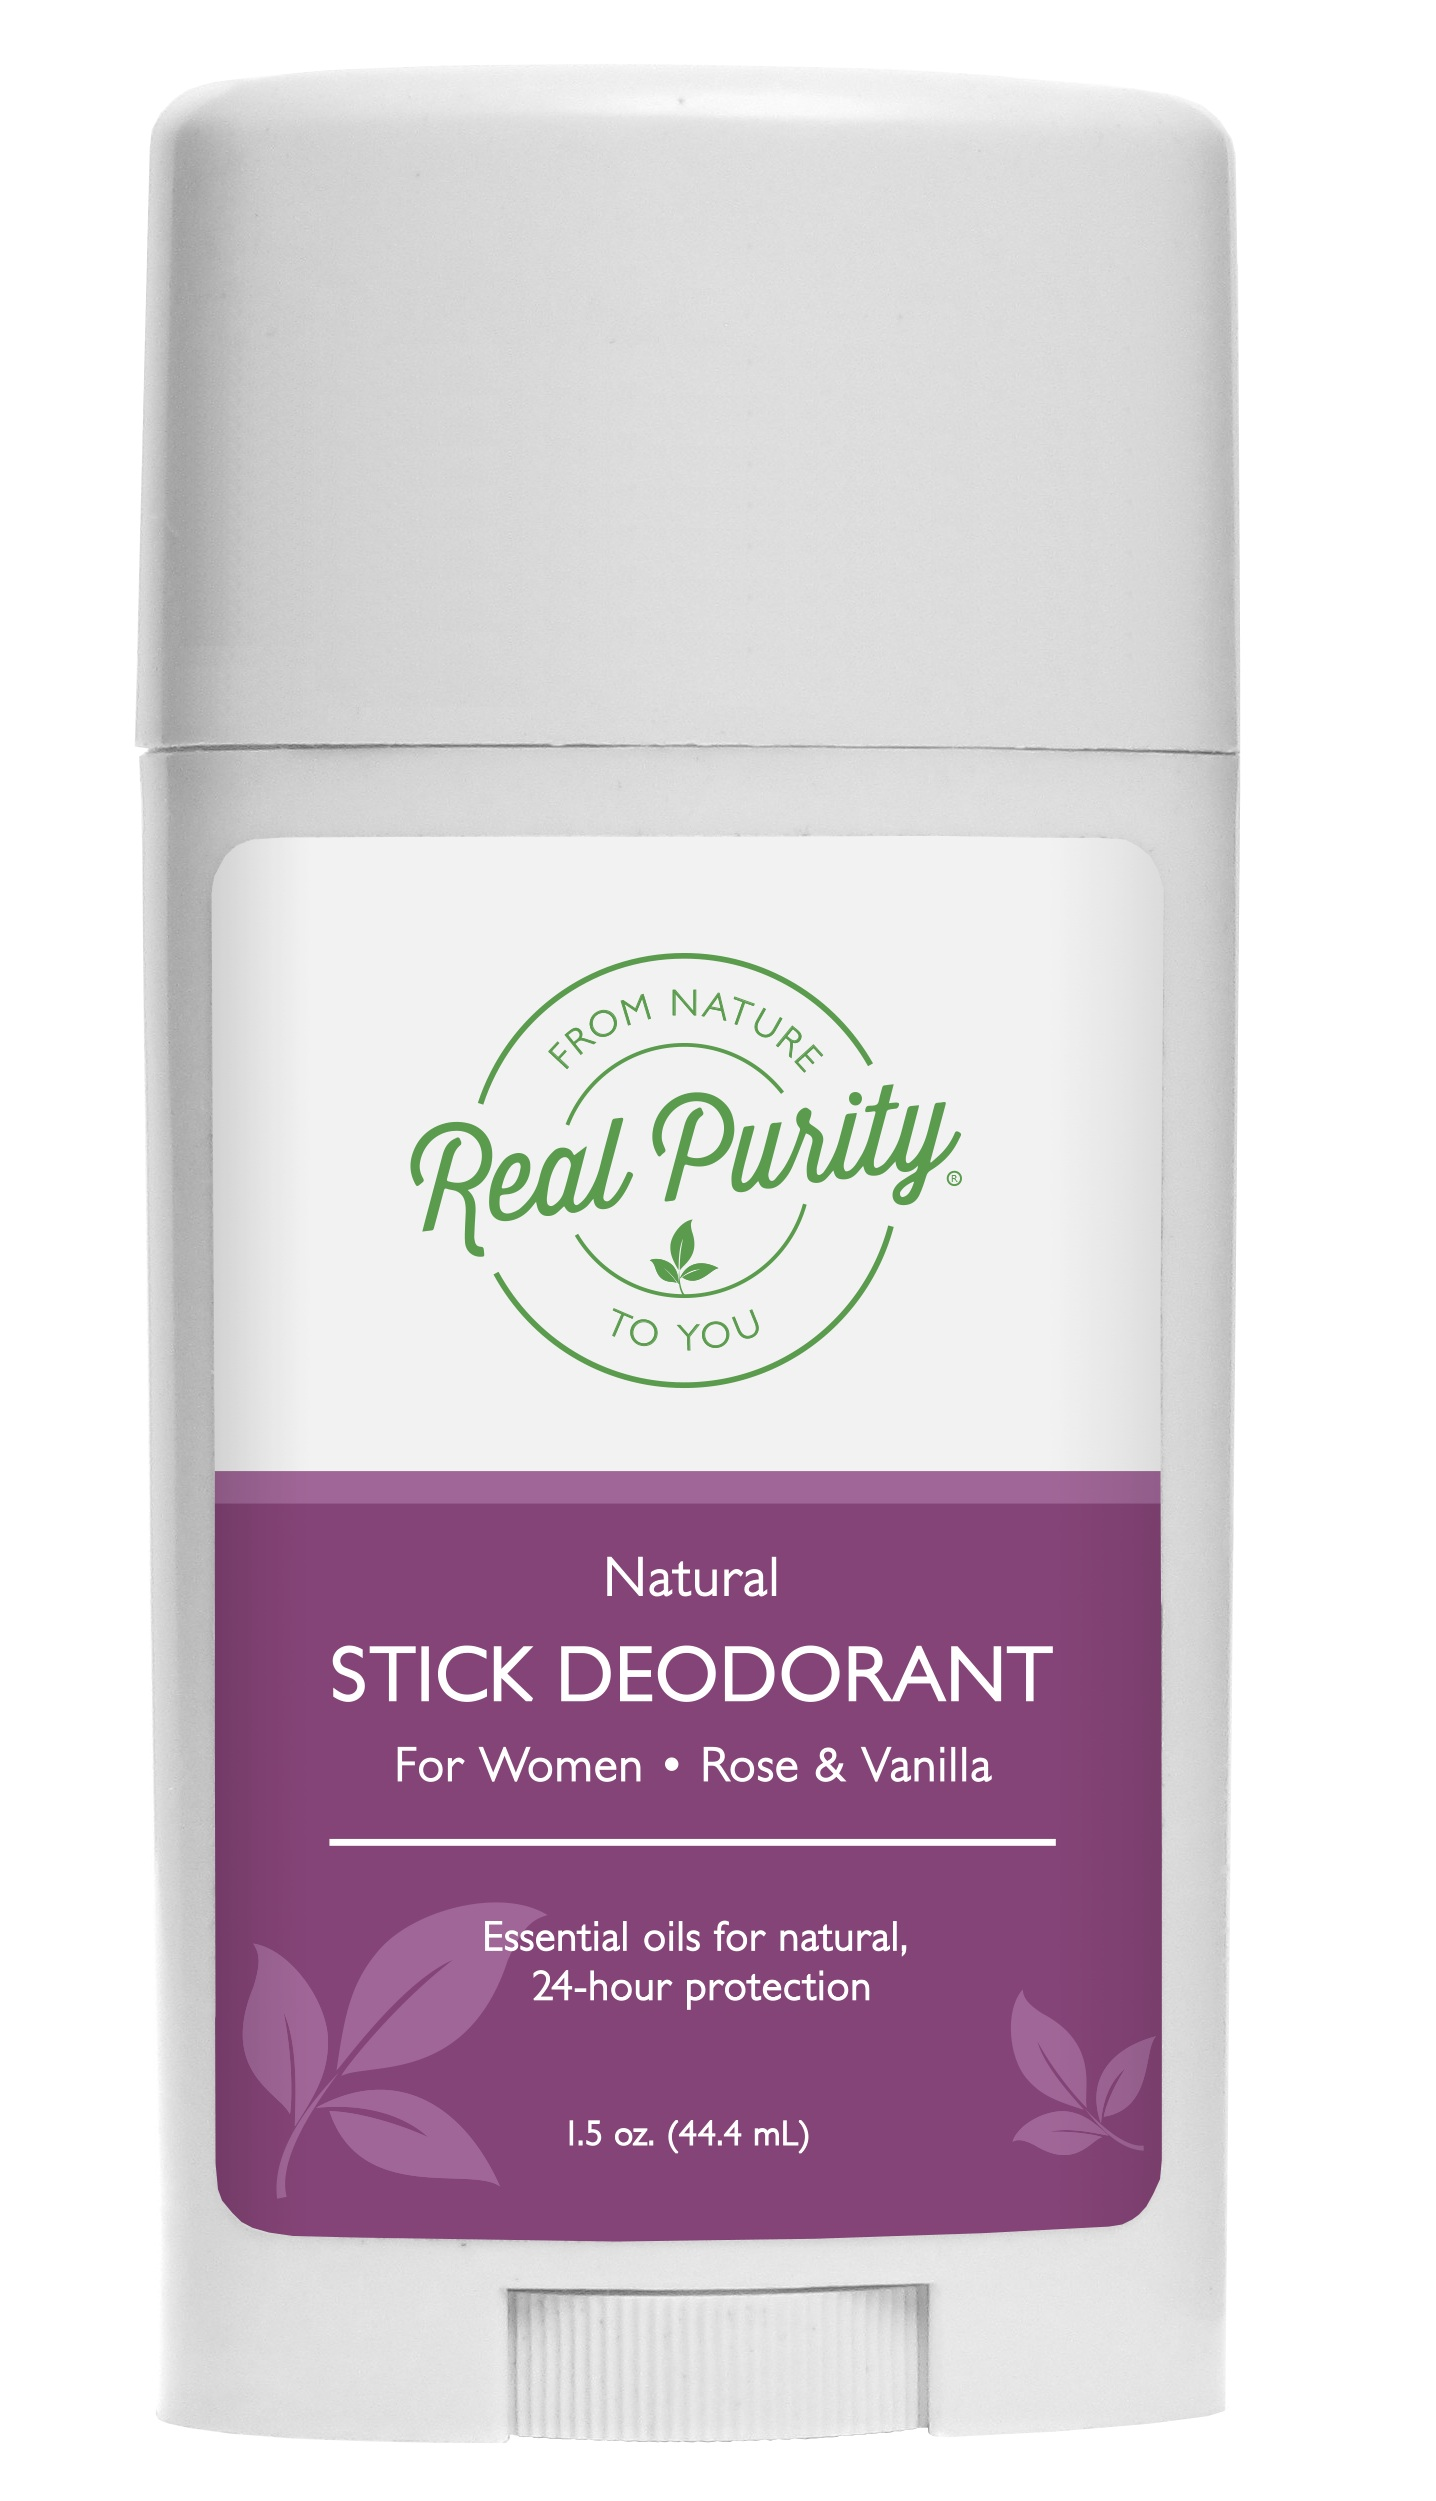 Real Purity Deodorant Whole Foods